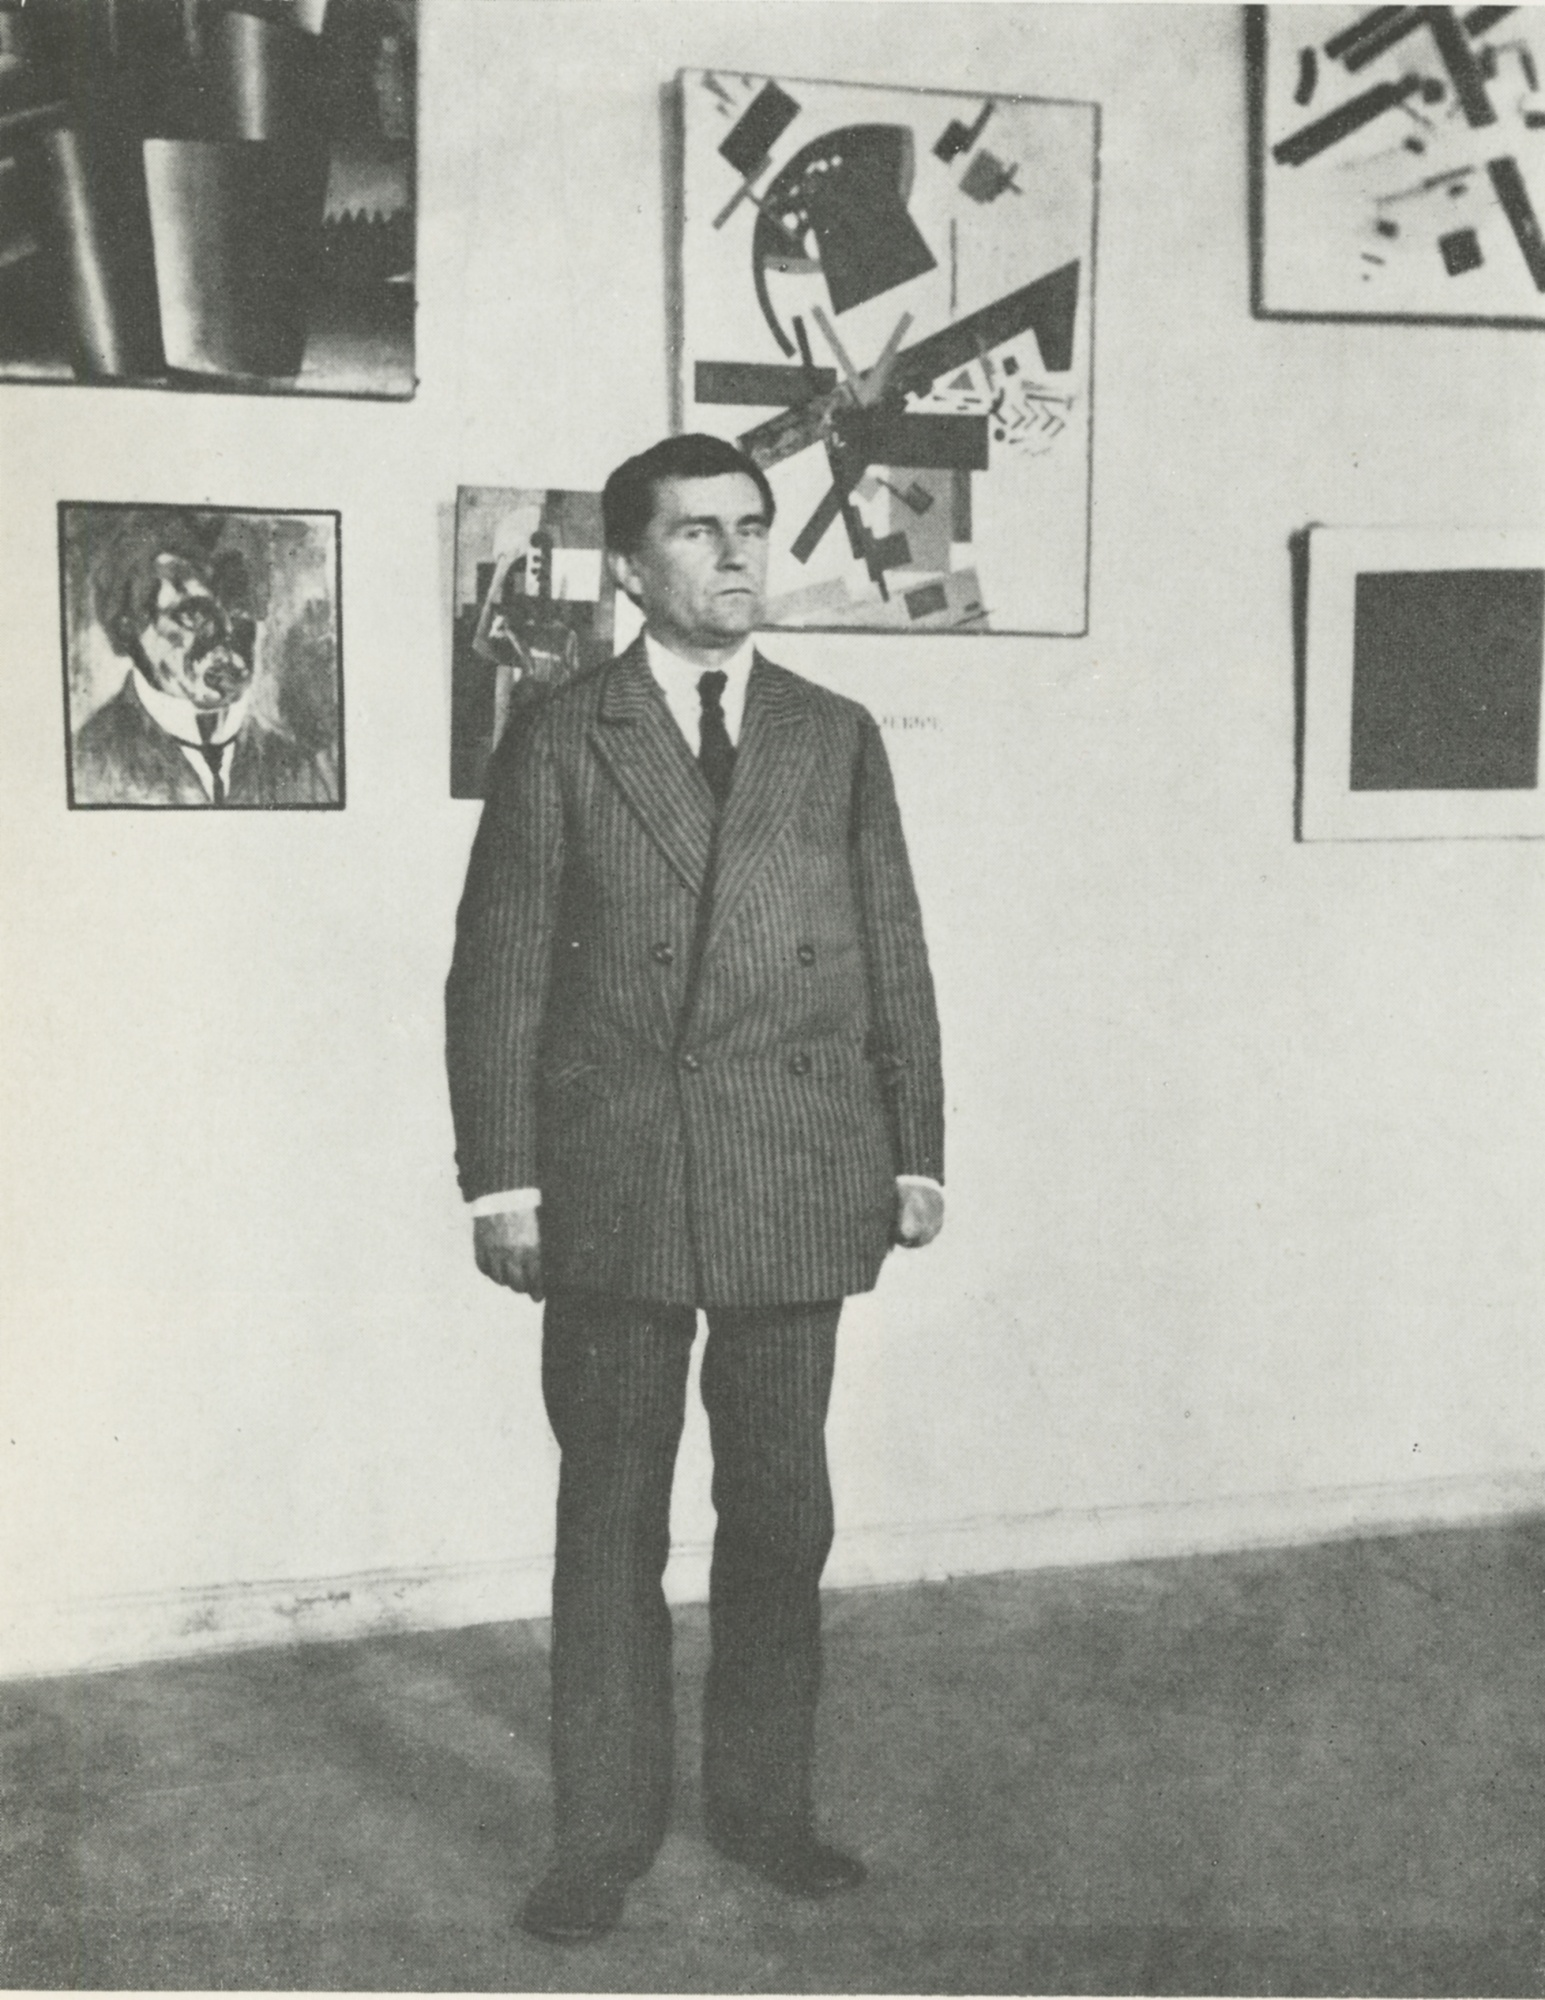 Kazimir_Malevich_with_his_paintings_in_Leningrad_1924.jpg